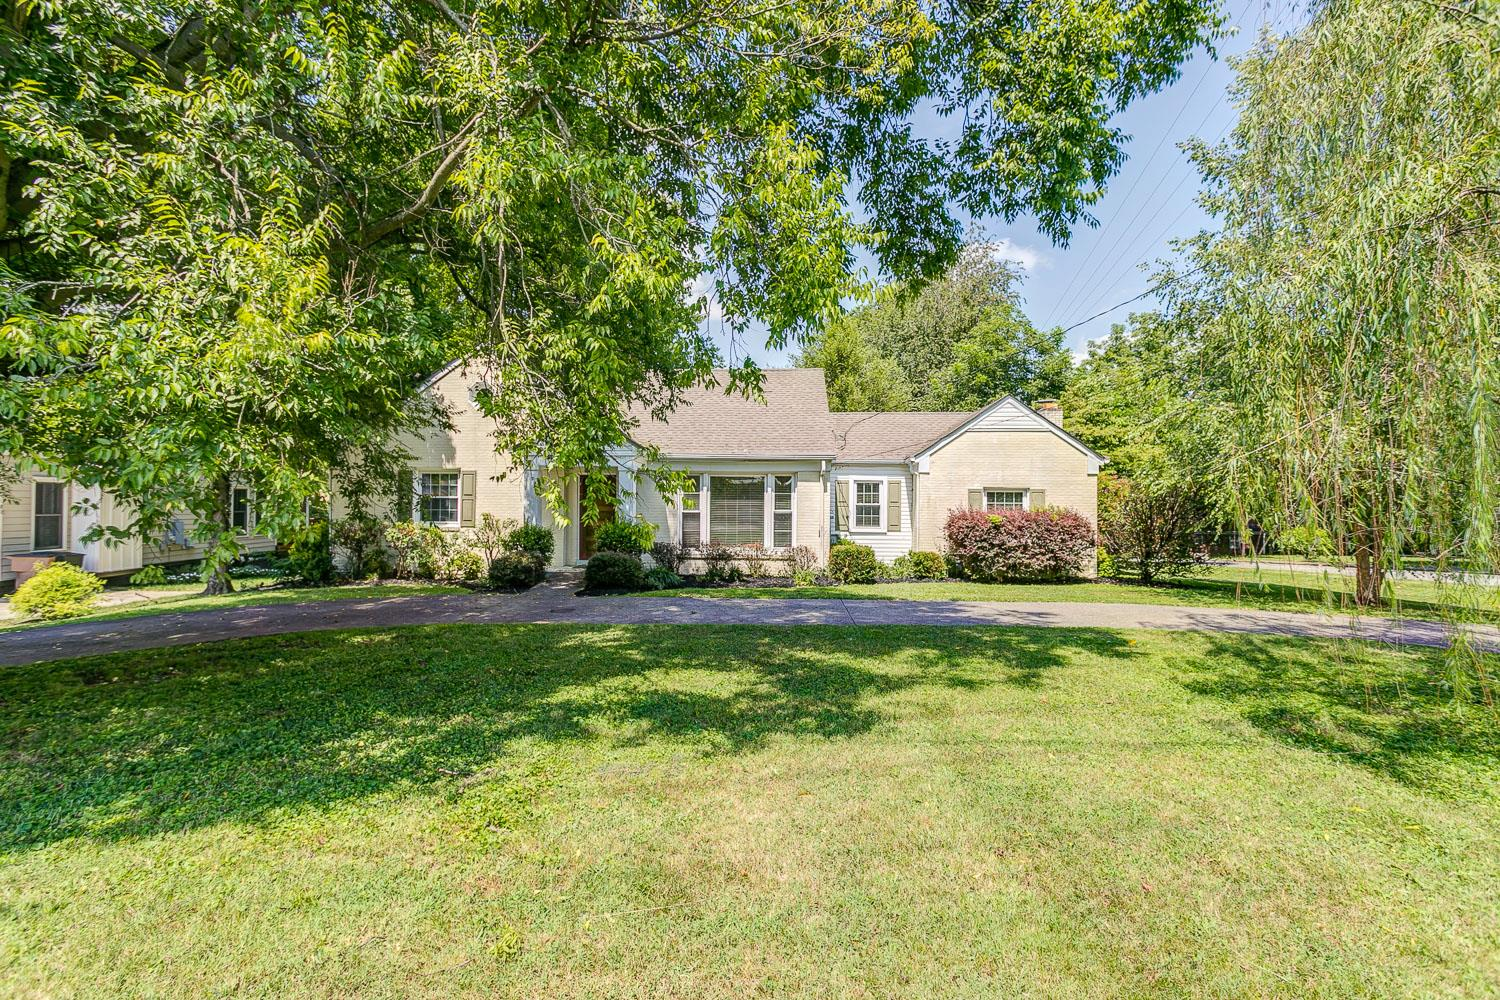 1329 Stratford Ave, Nashville, TN 37216 - Nashville, TN real estate listing